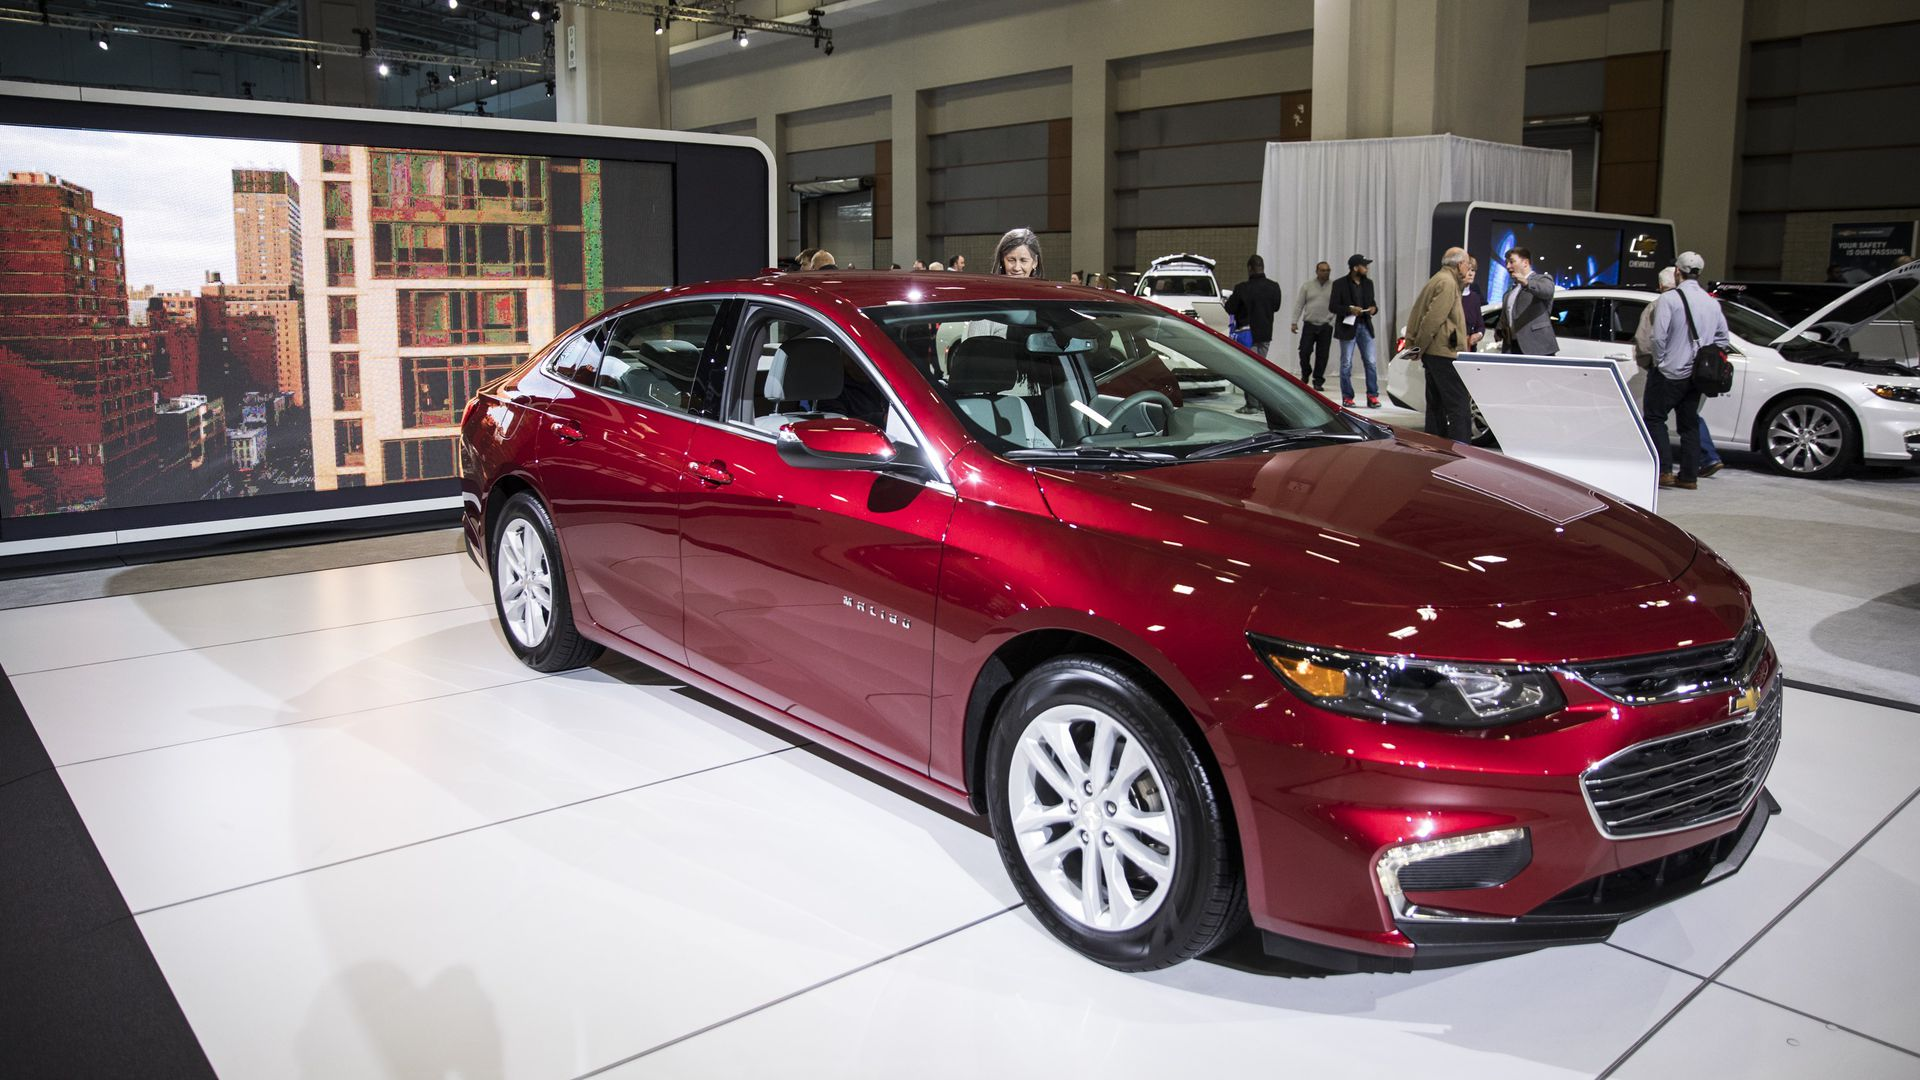 Washington Auto Show To Have Most Allelectric Vehicles To Date - Washington car show